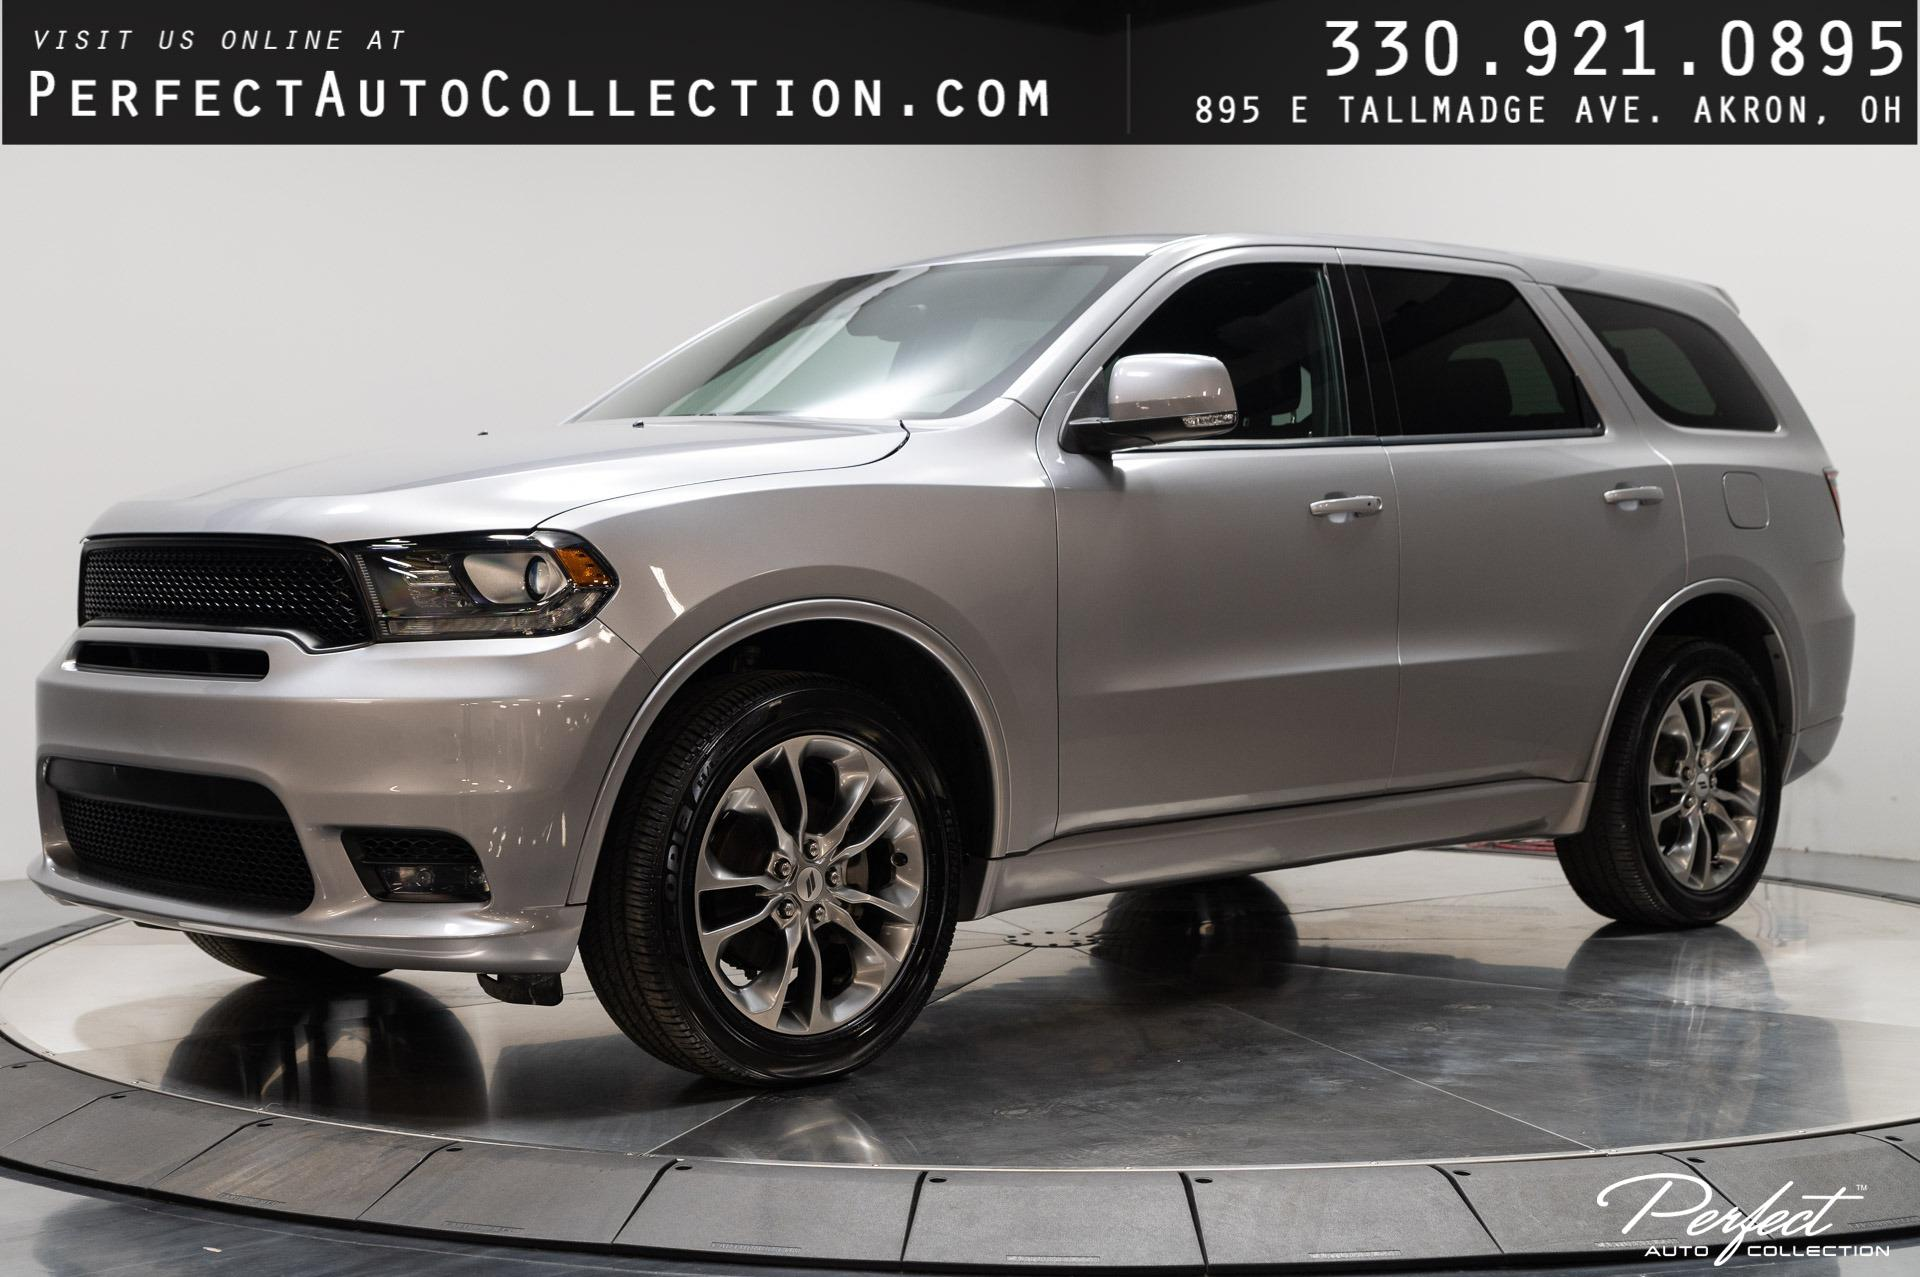 Used 2019 Dodge Durango GT Plus for sale $27,495 at Perfect Auto Collection in Akron OH 44310 1